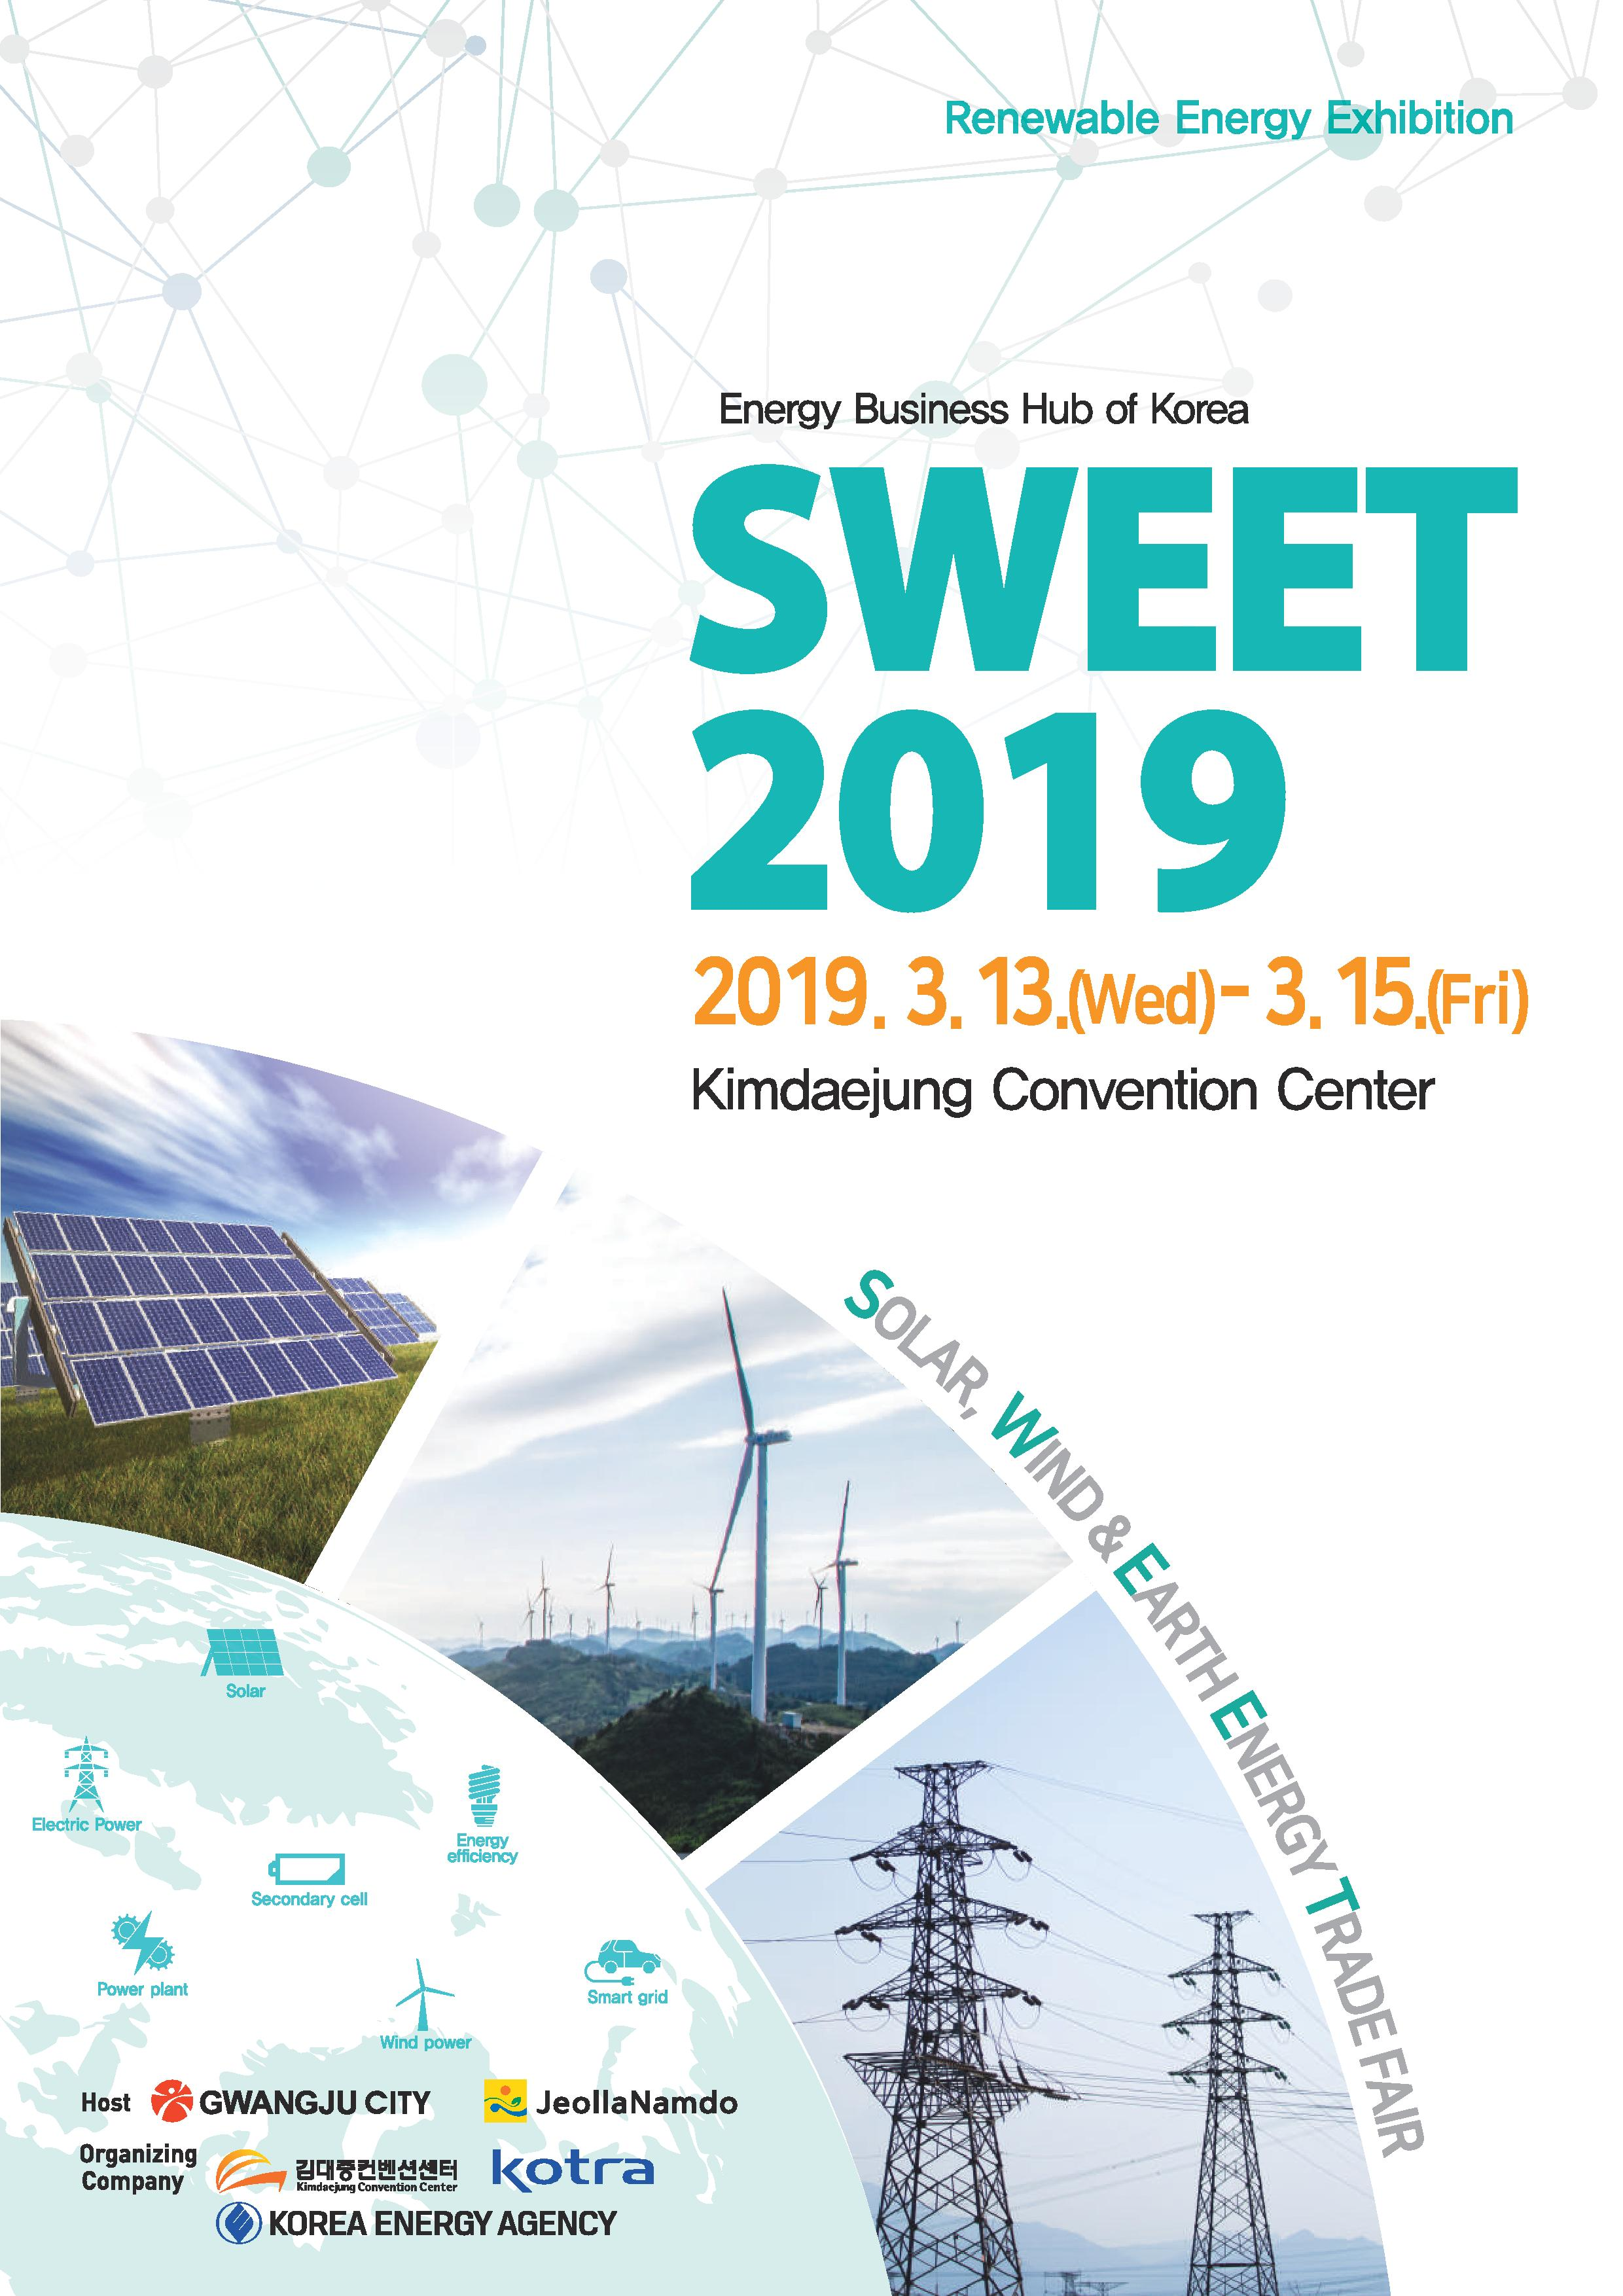 SWEET_2019_Brochure(ENG).compressed-page-001.jpg